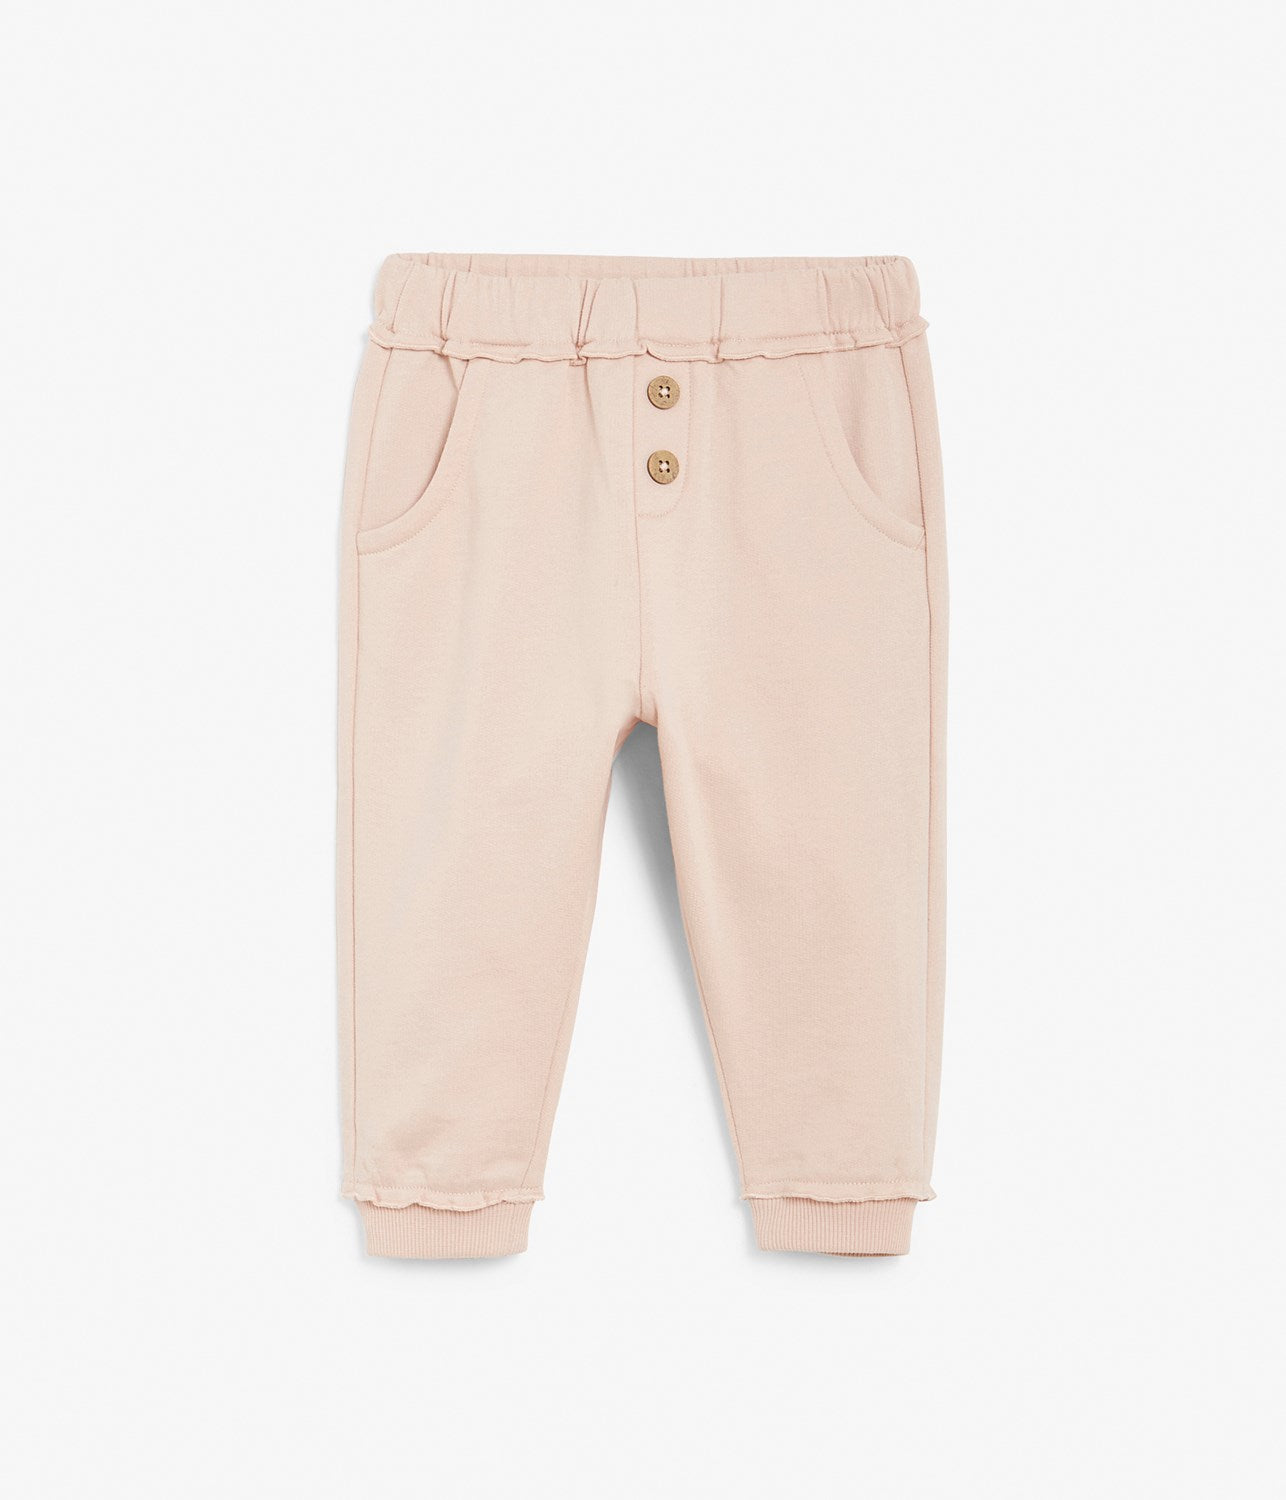 Baby pink sweatpants with mini frills